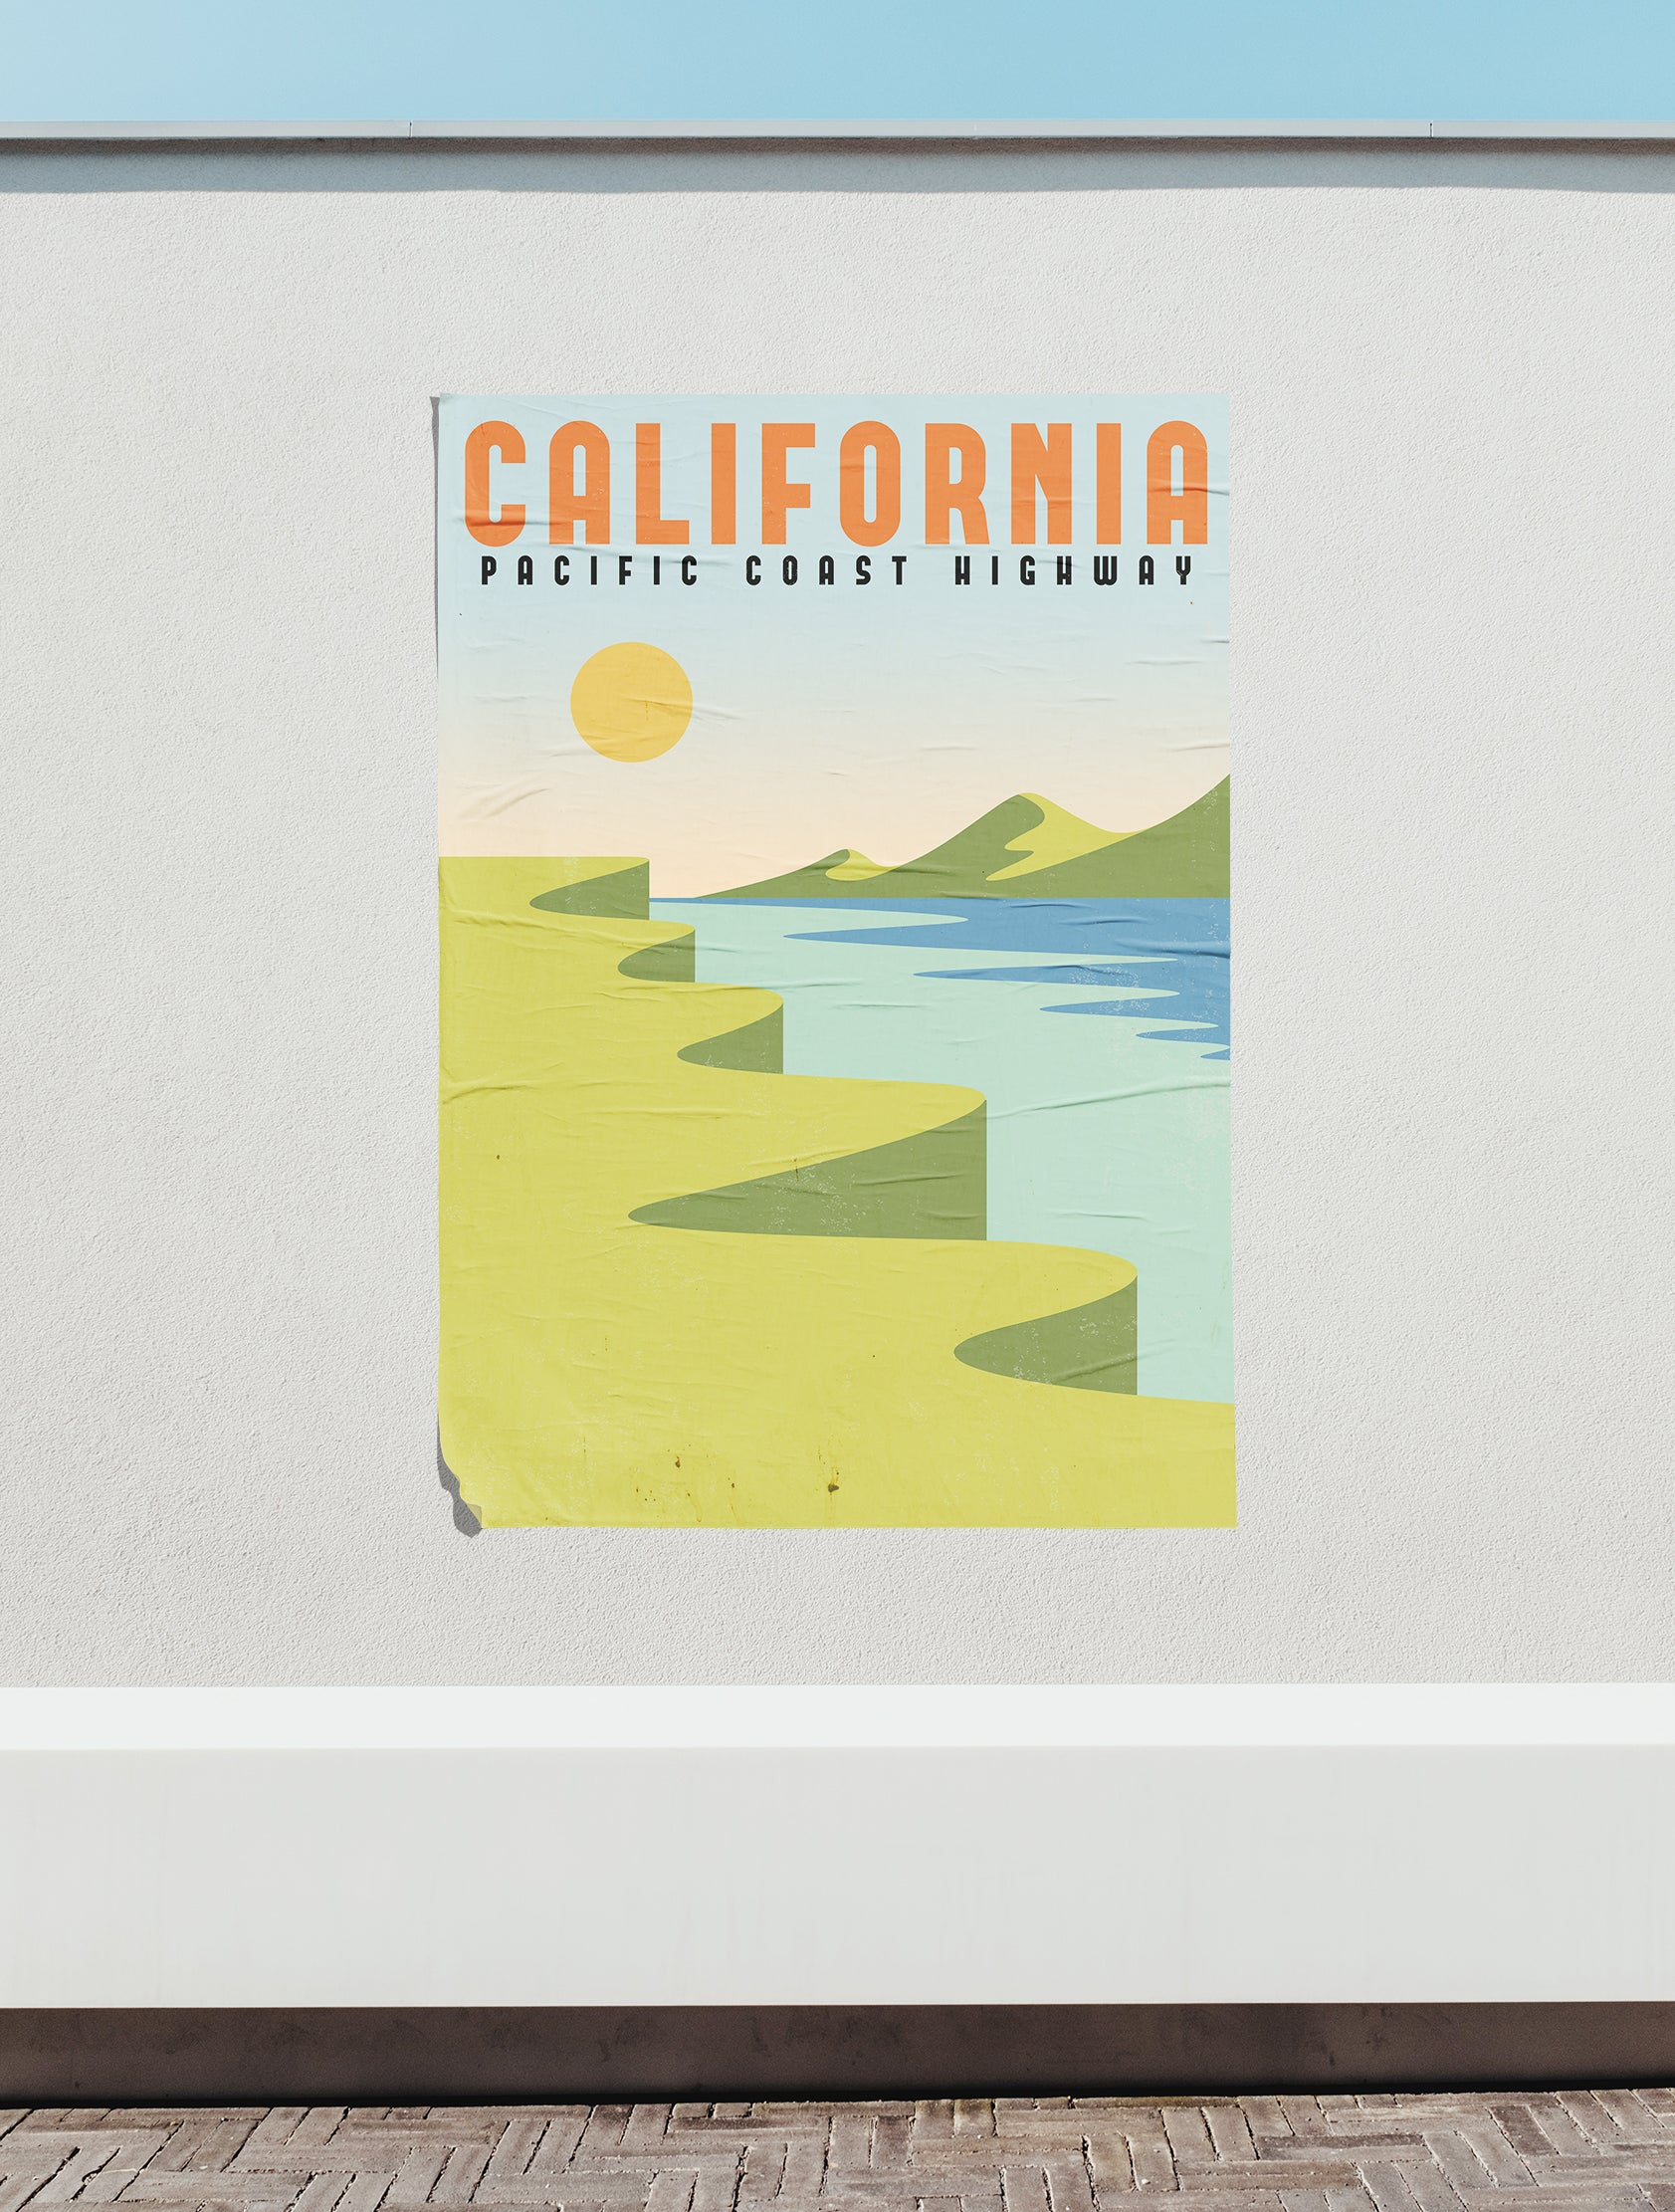 Pacific Coast Highway, California - Poster